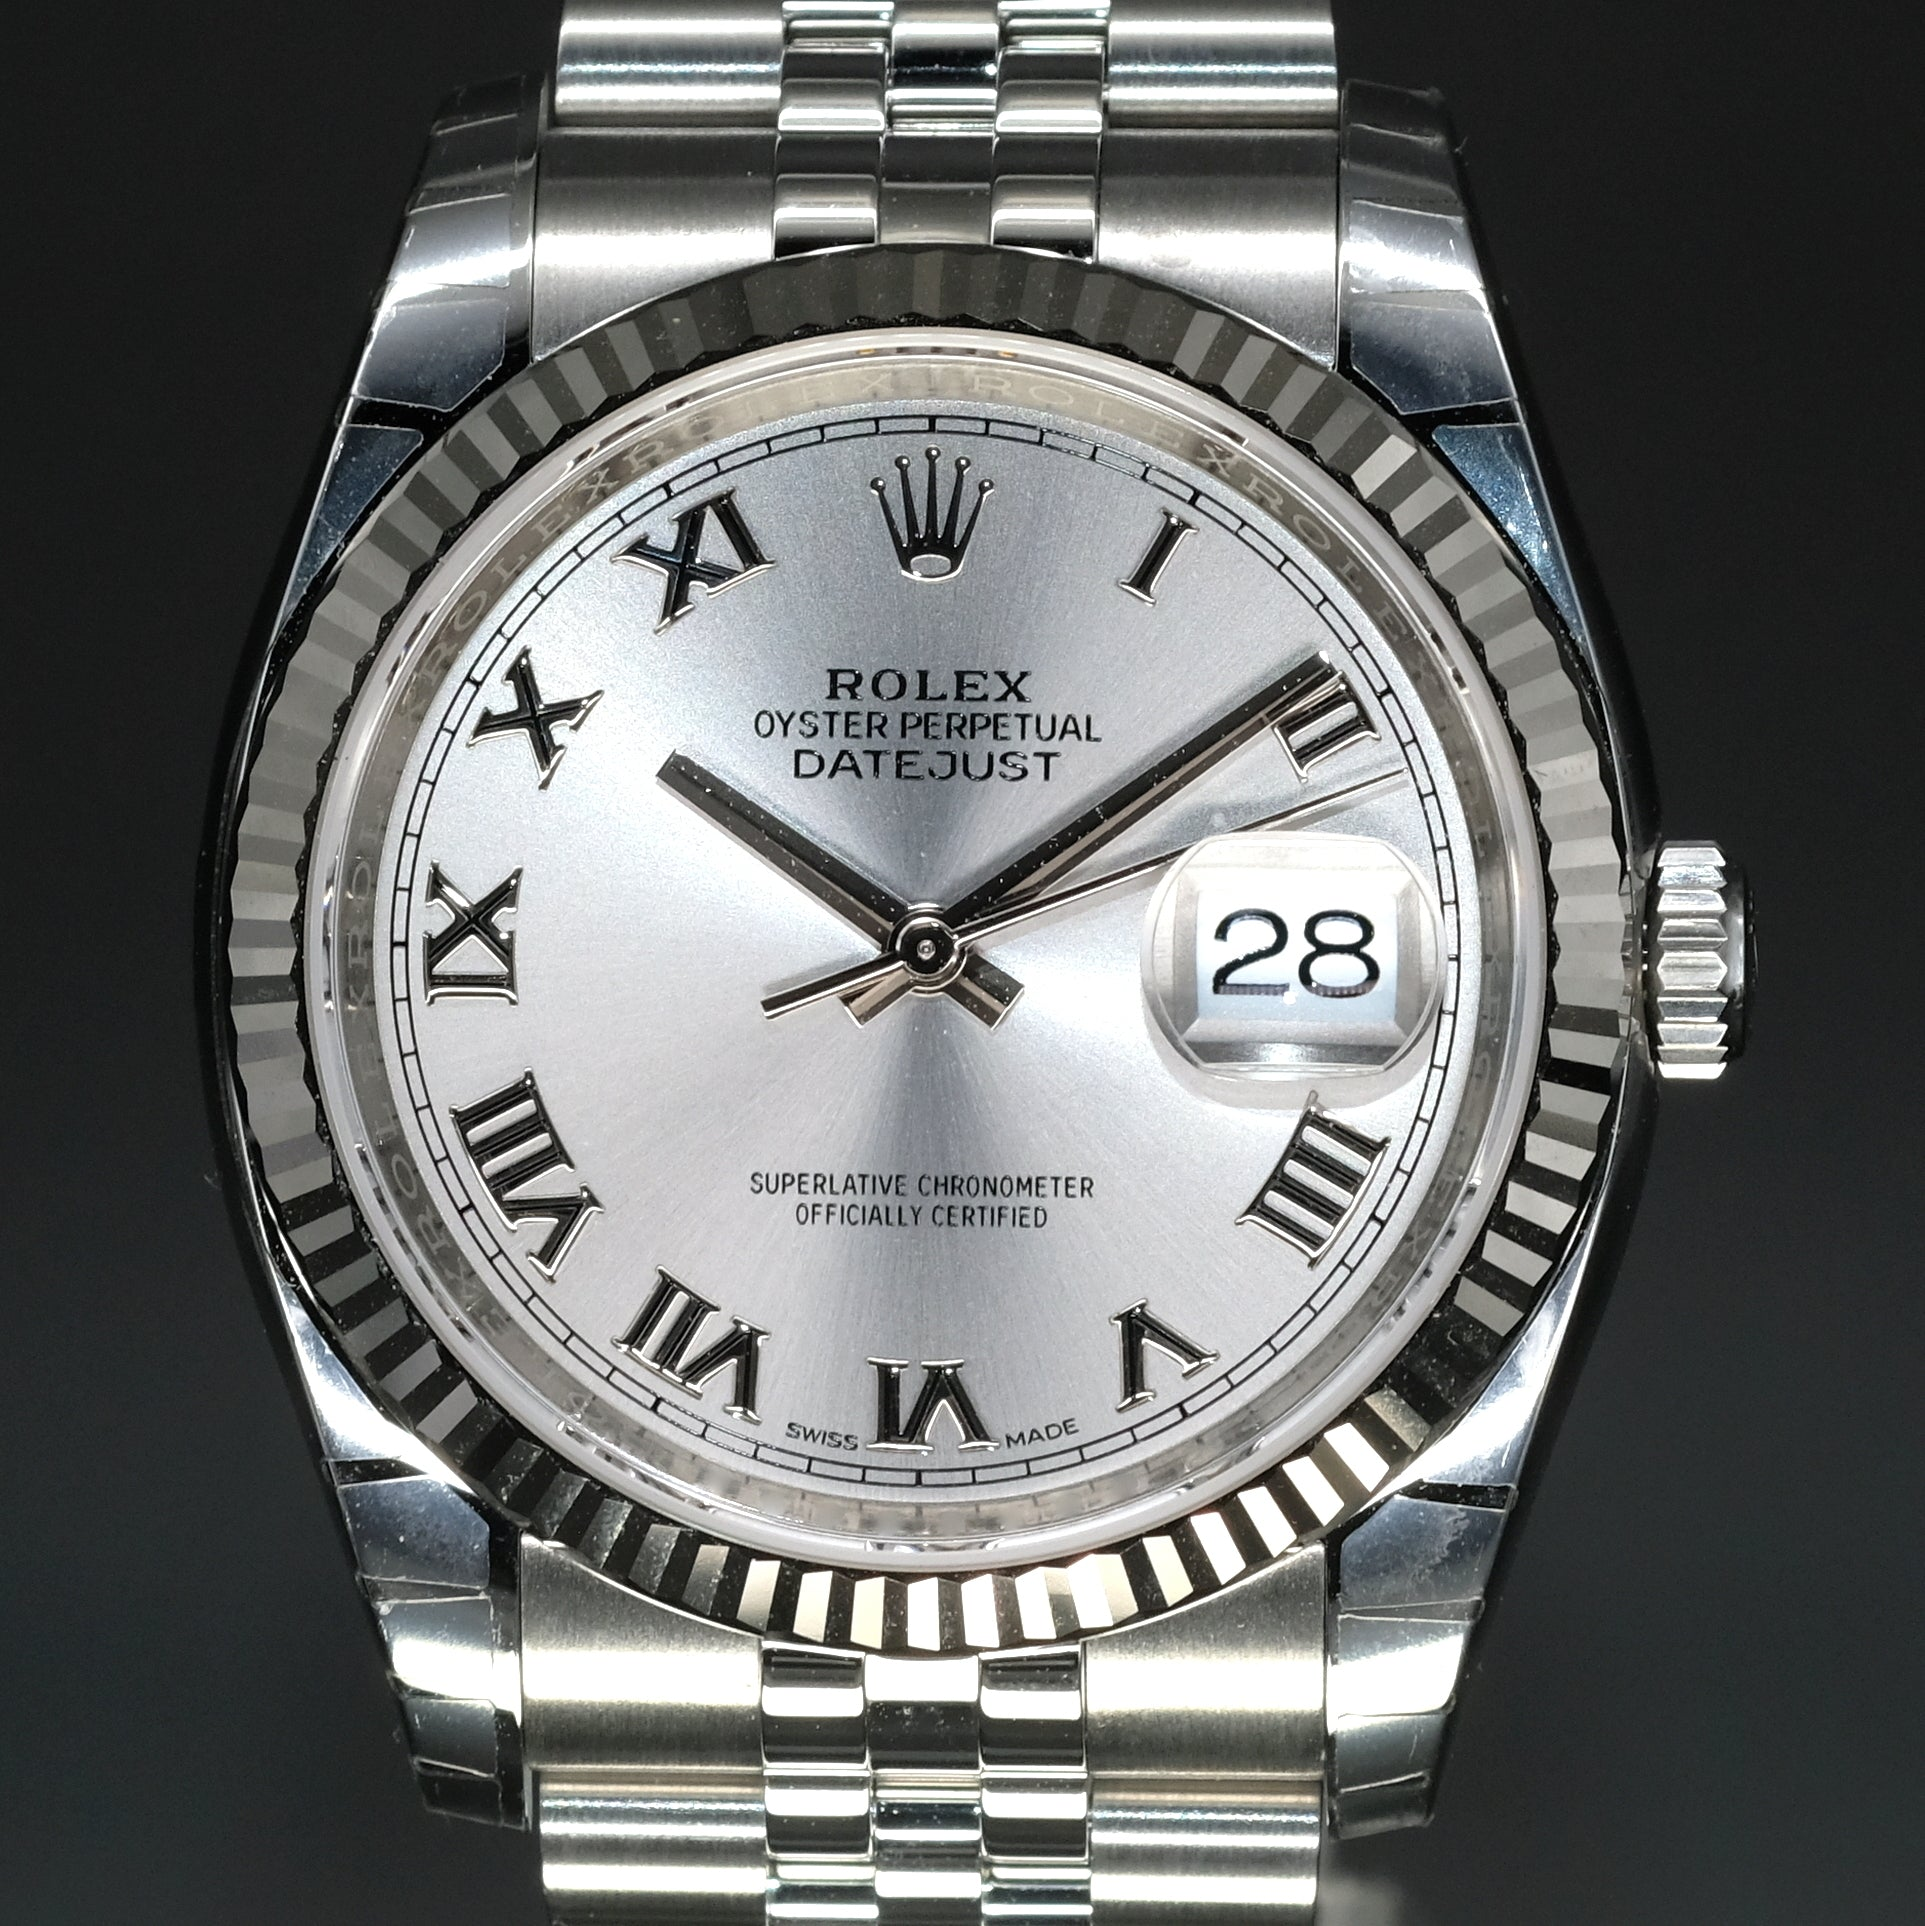 [Brand New Watch] Rolex Datejust 36mm 116234 Rhodium Roman Dial (Jubilee Bracelet)